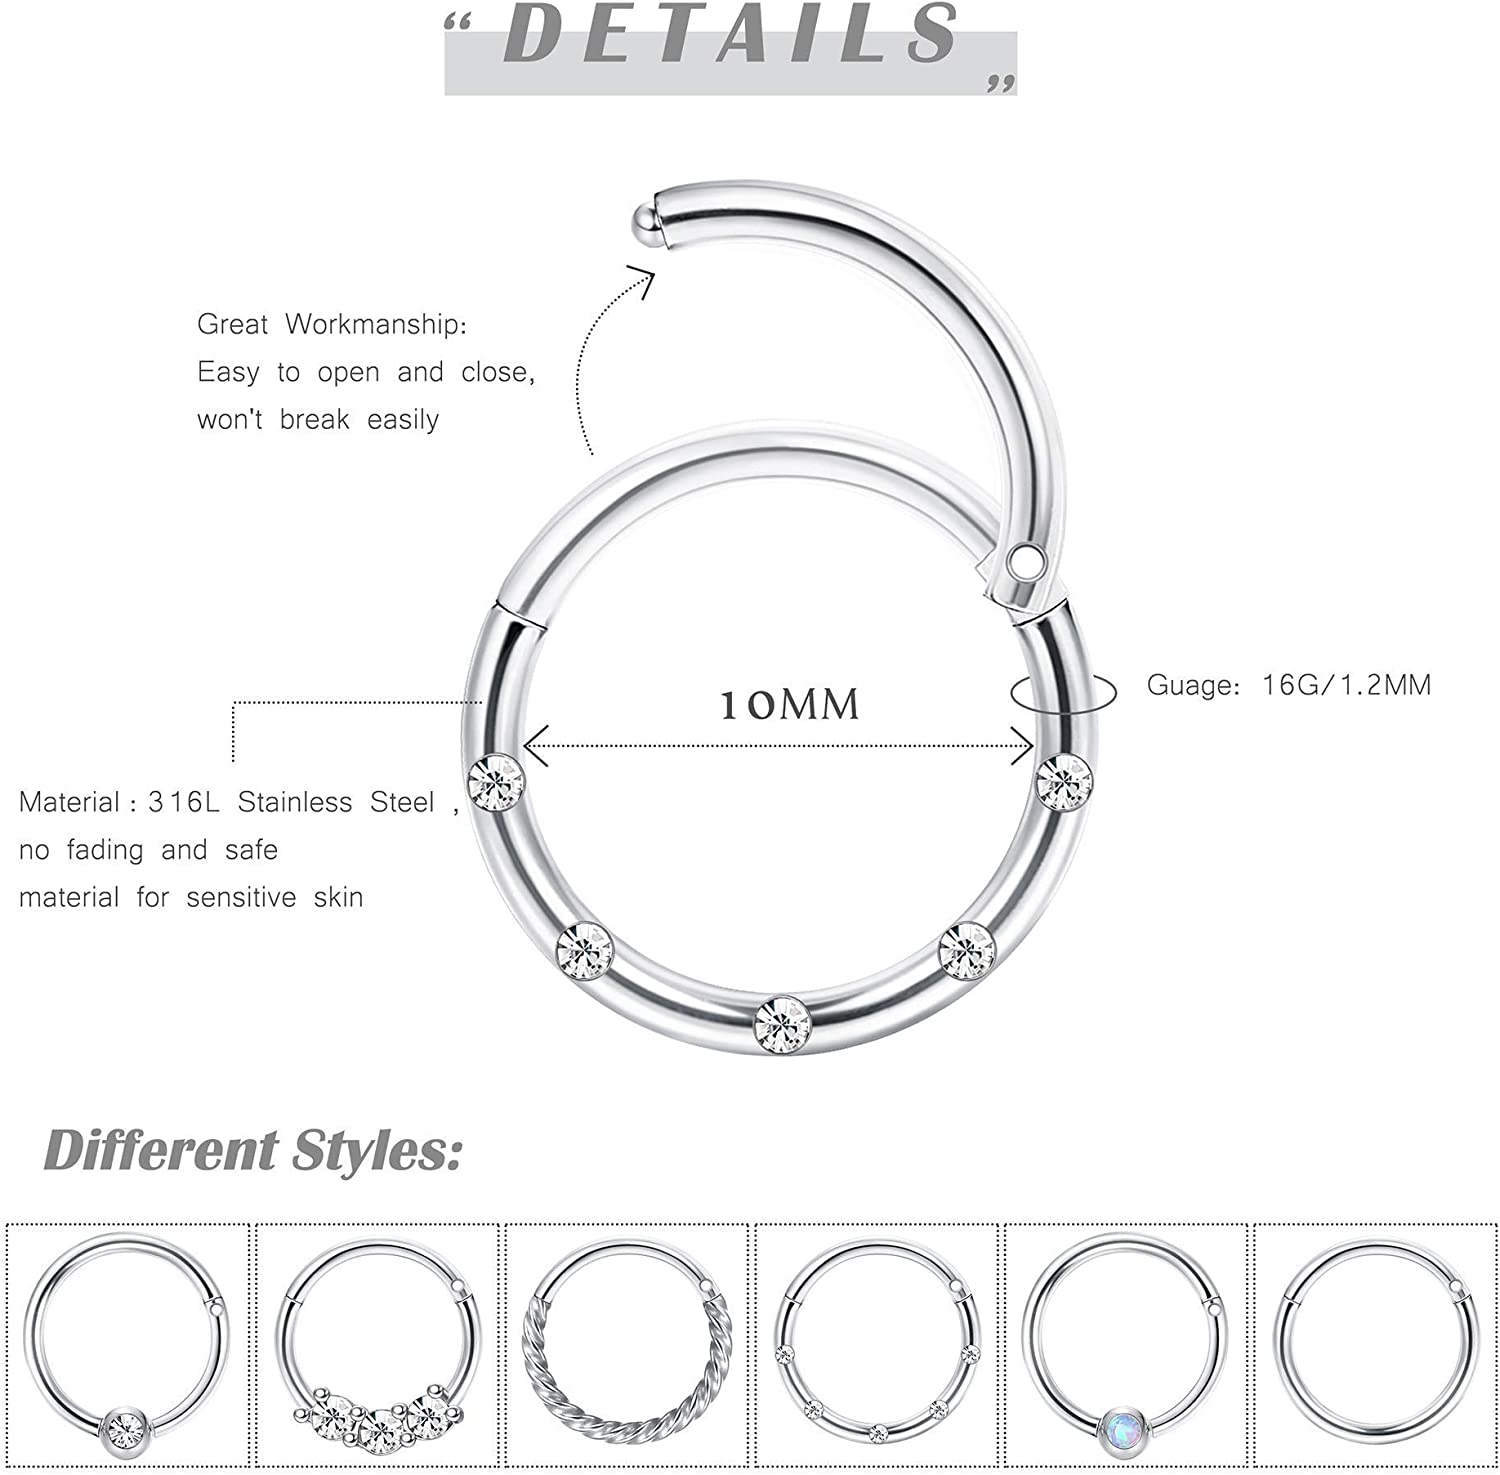 Subiceto Cartilage Hoop Earrings for Men Women Stainless Steel CBR Hinged Clicker Nose Ring Helix Septum Couch Daith Lip Tragus Piercing Sleeper Earrings Jewelry Set